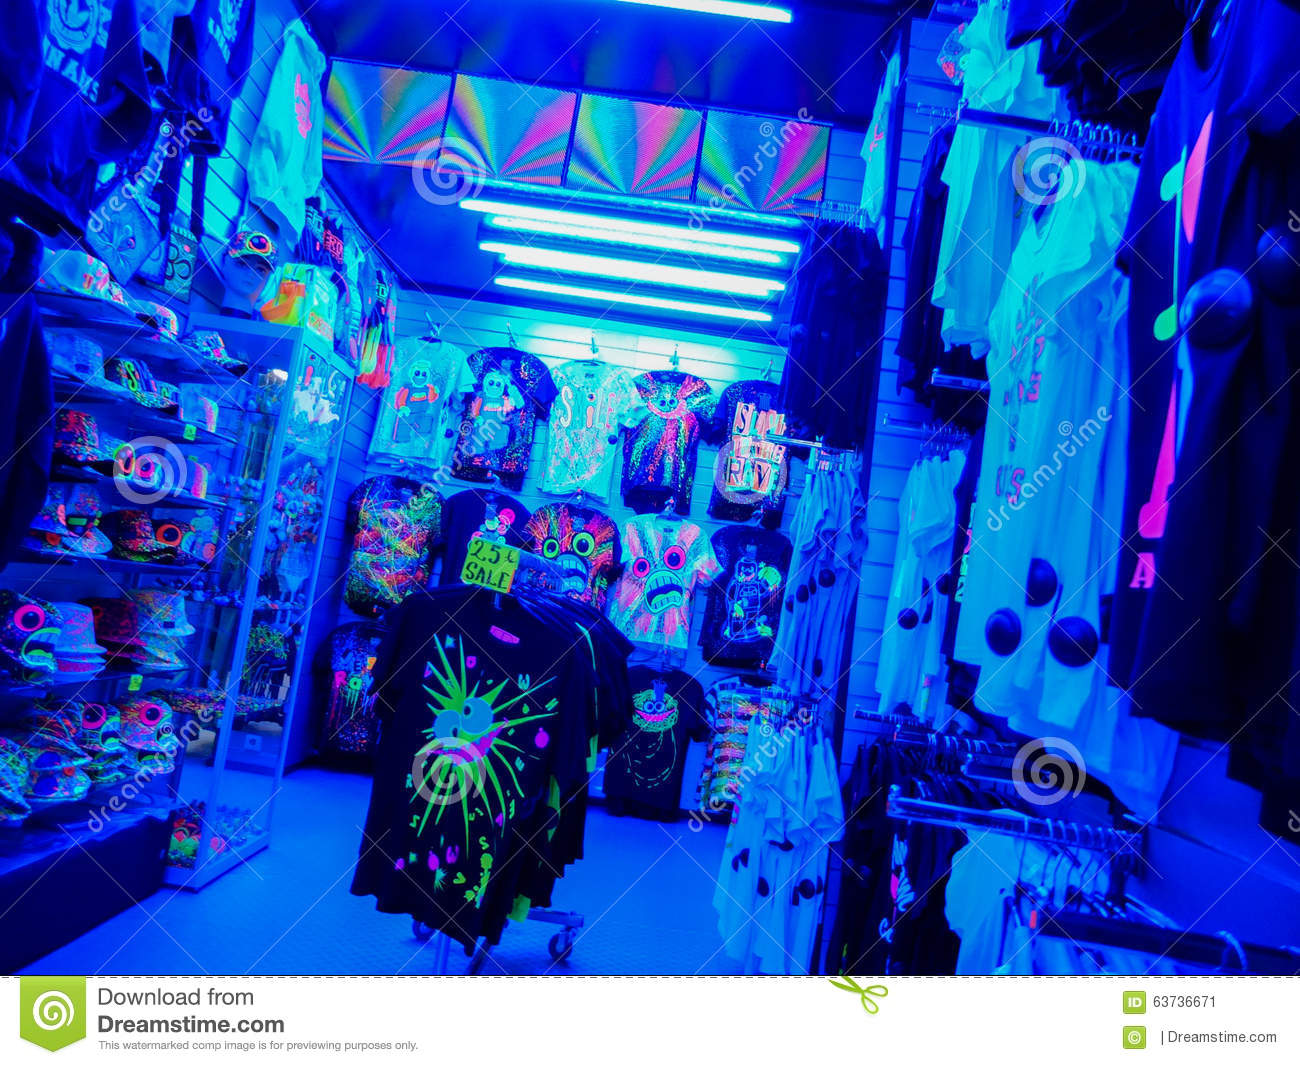 Rave clothing stores